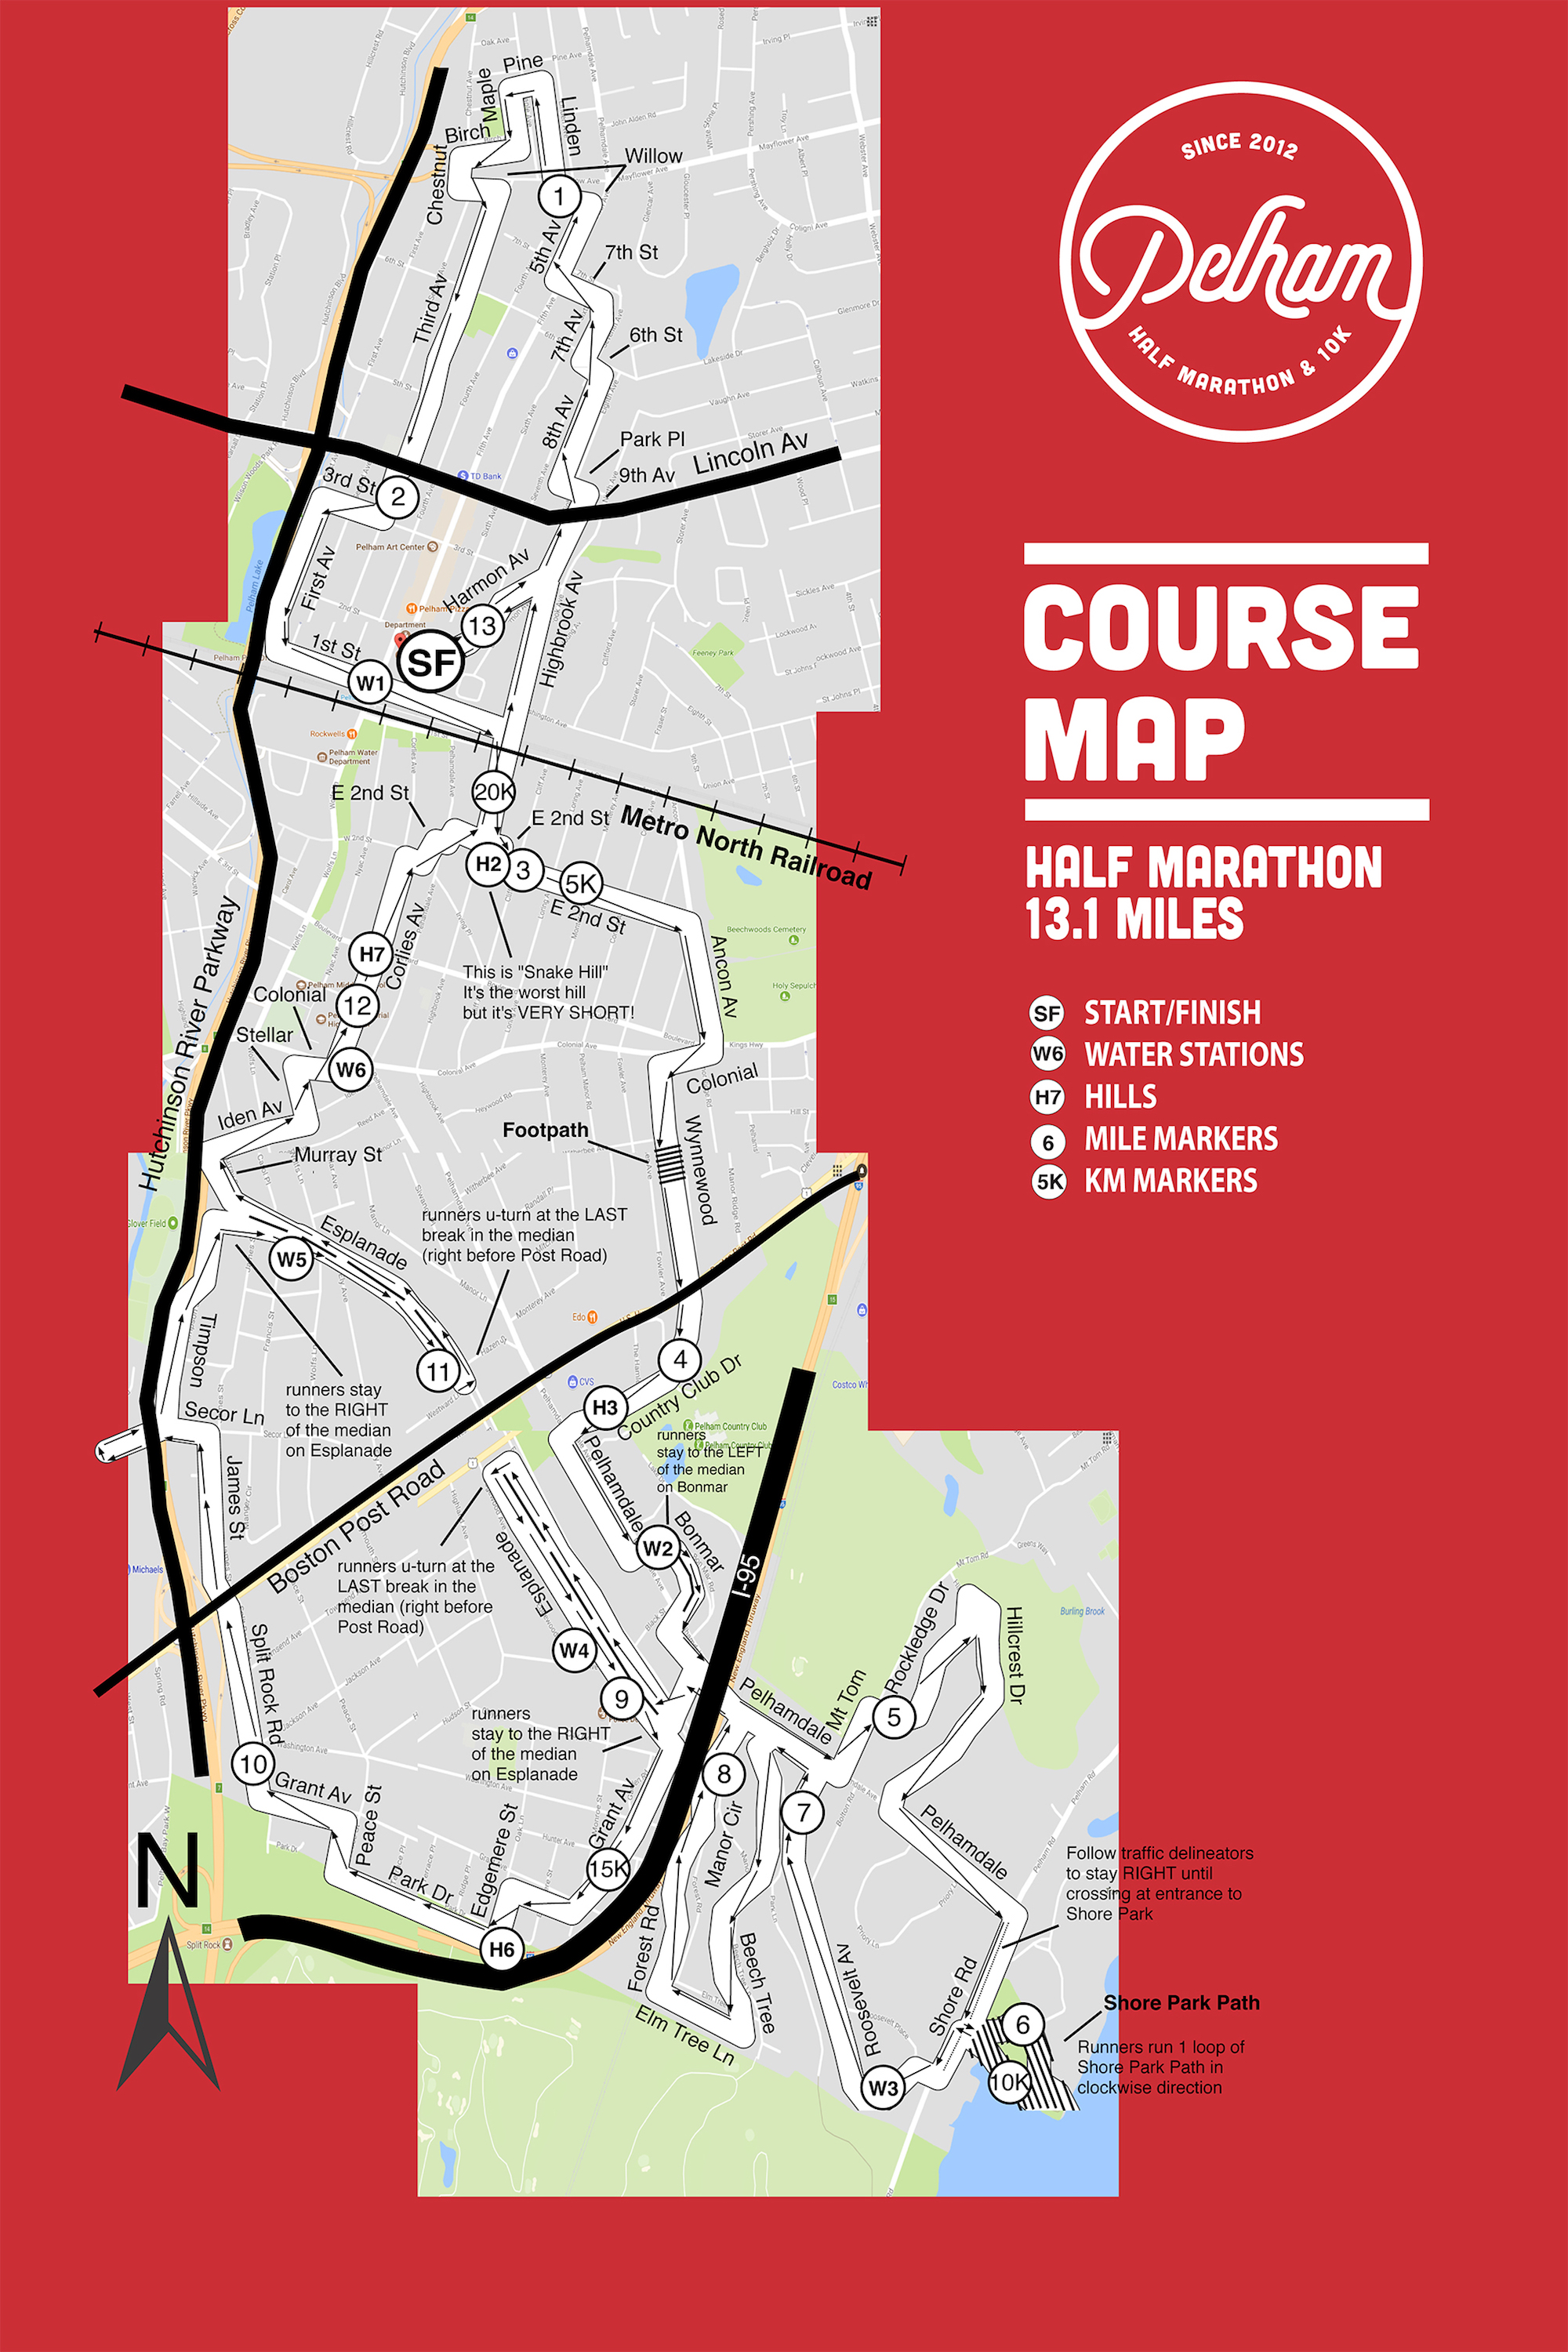 2017 PHM Half Marathon Course Map